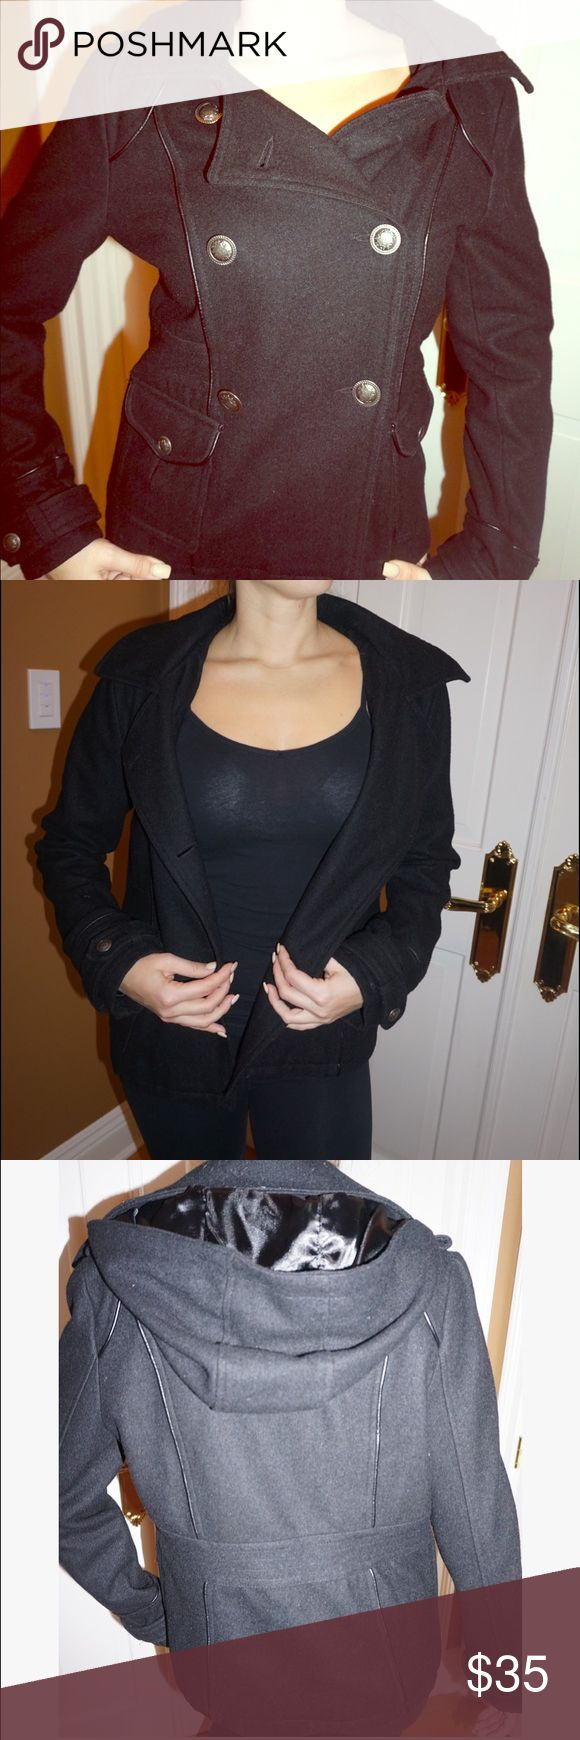 Black Pea Coat 🖤 Very cute black pea coat. In very good condition. Stylish and warm. Worn only a few times. Buttons up the front. Pockets in front that button. Hood attached with buttons- can be removed. Jackets & Coats Pea Coats